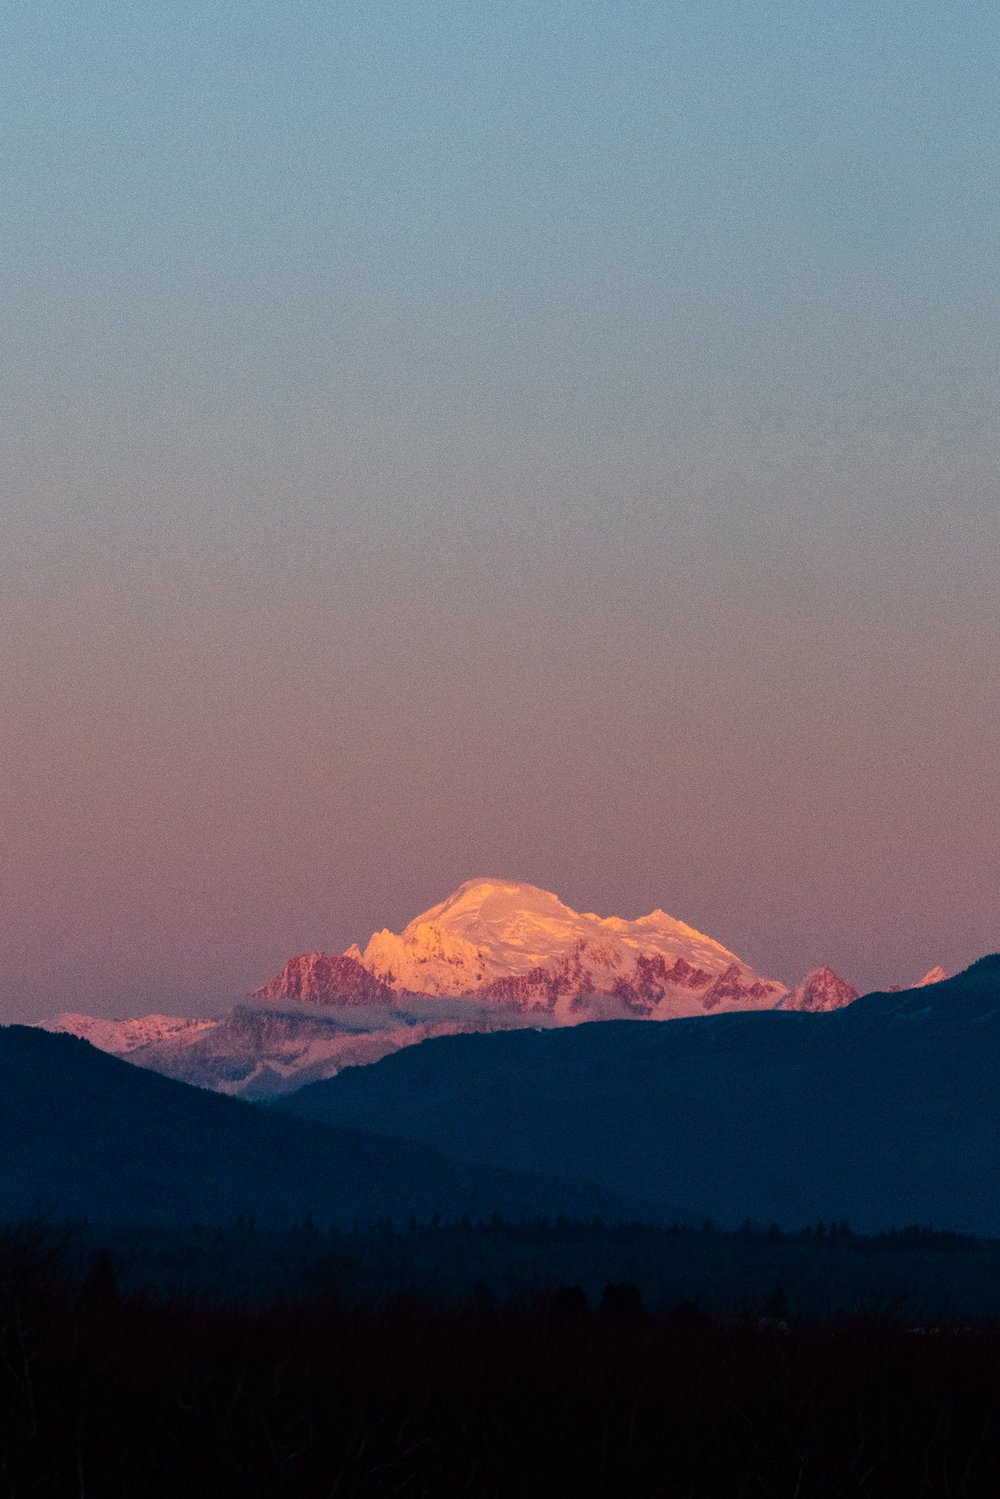 Sunset over Mount Hood in the Northern Cascade Mountain Range of Washington State